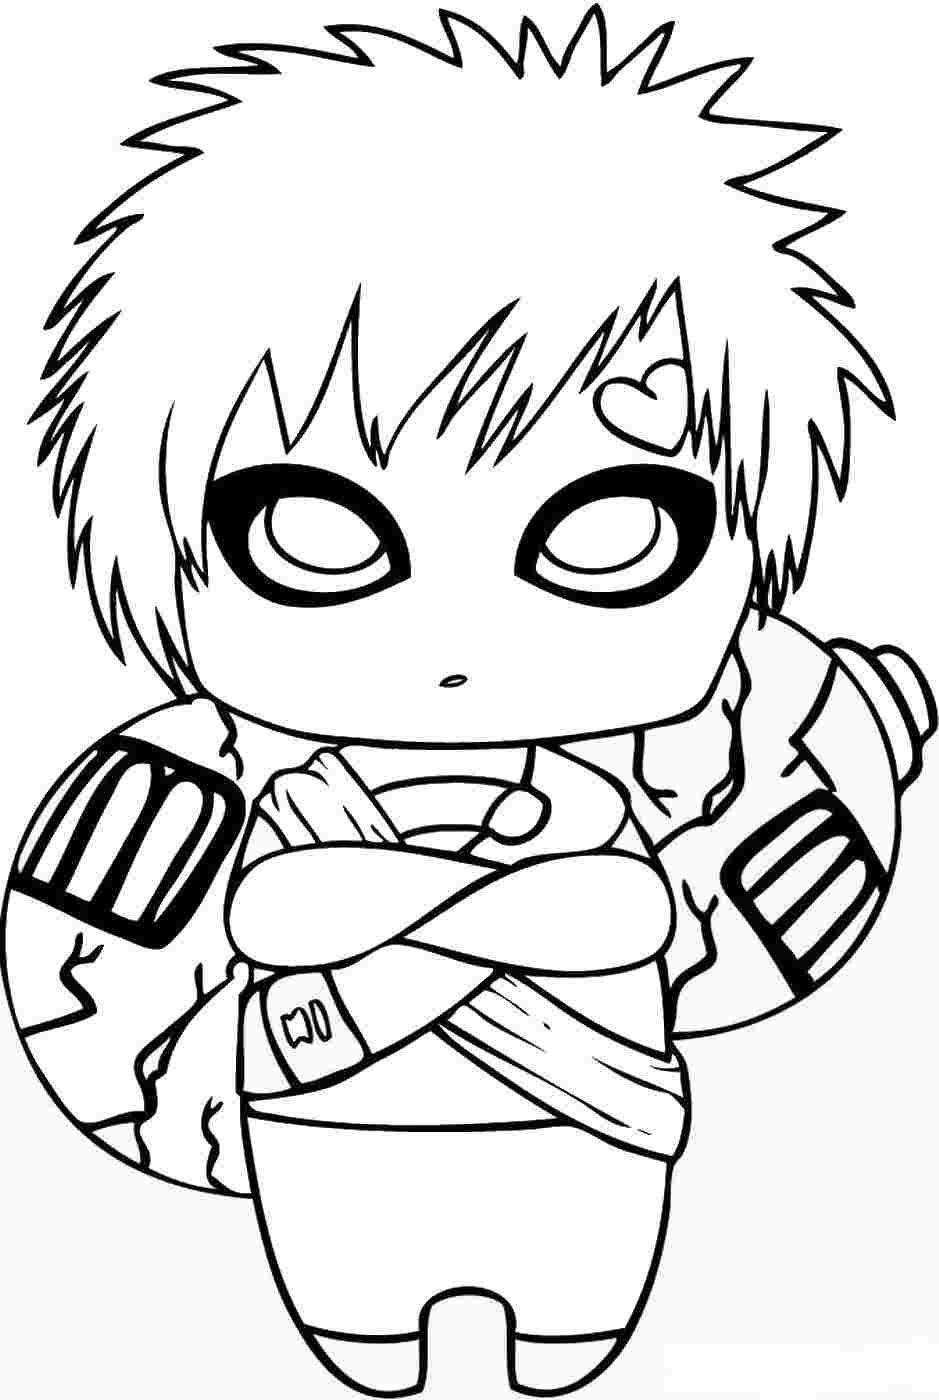 Naruto Coloring Pages That Are Printable In 2020 Naruto Drawings Anime Chibi Chibi Drawings